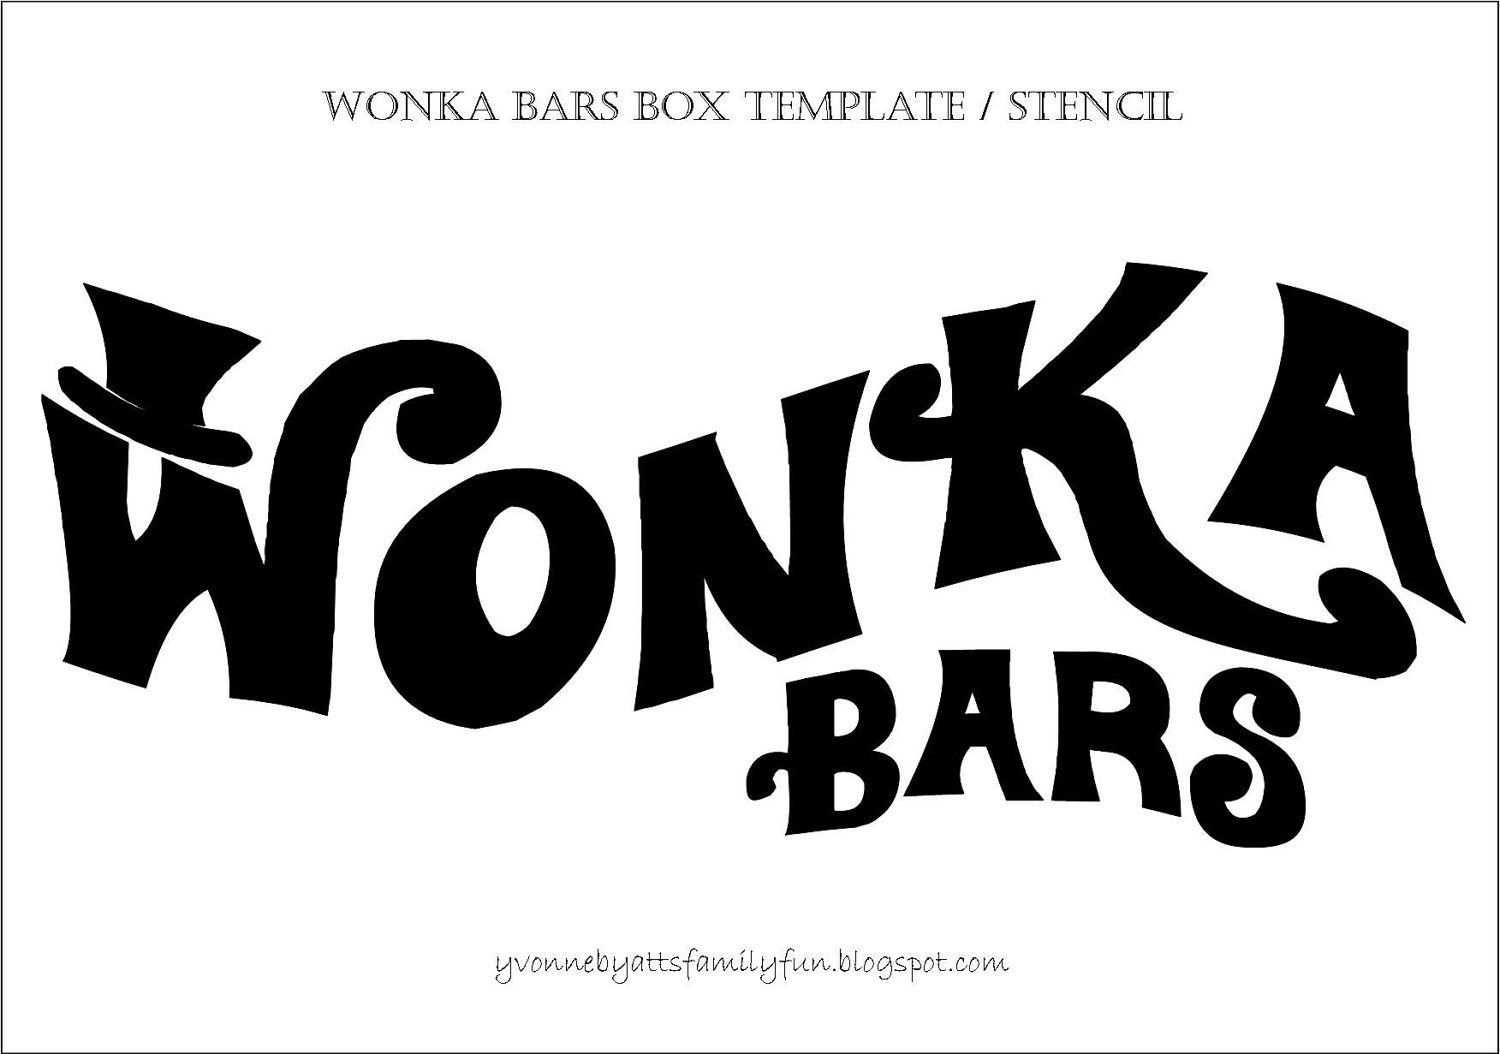 Wonka Bars Stencil for box decorations props | Willy Wonka ...